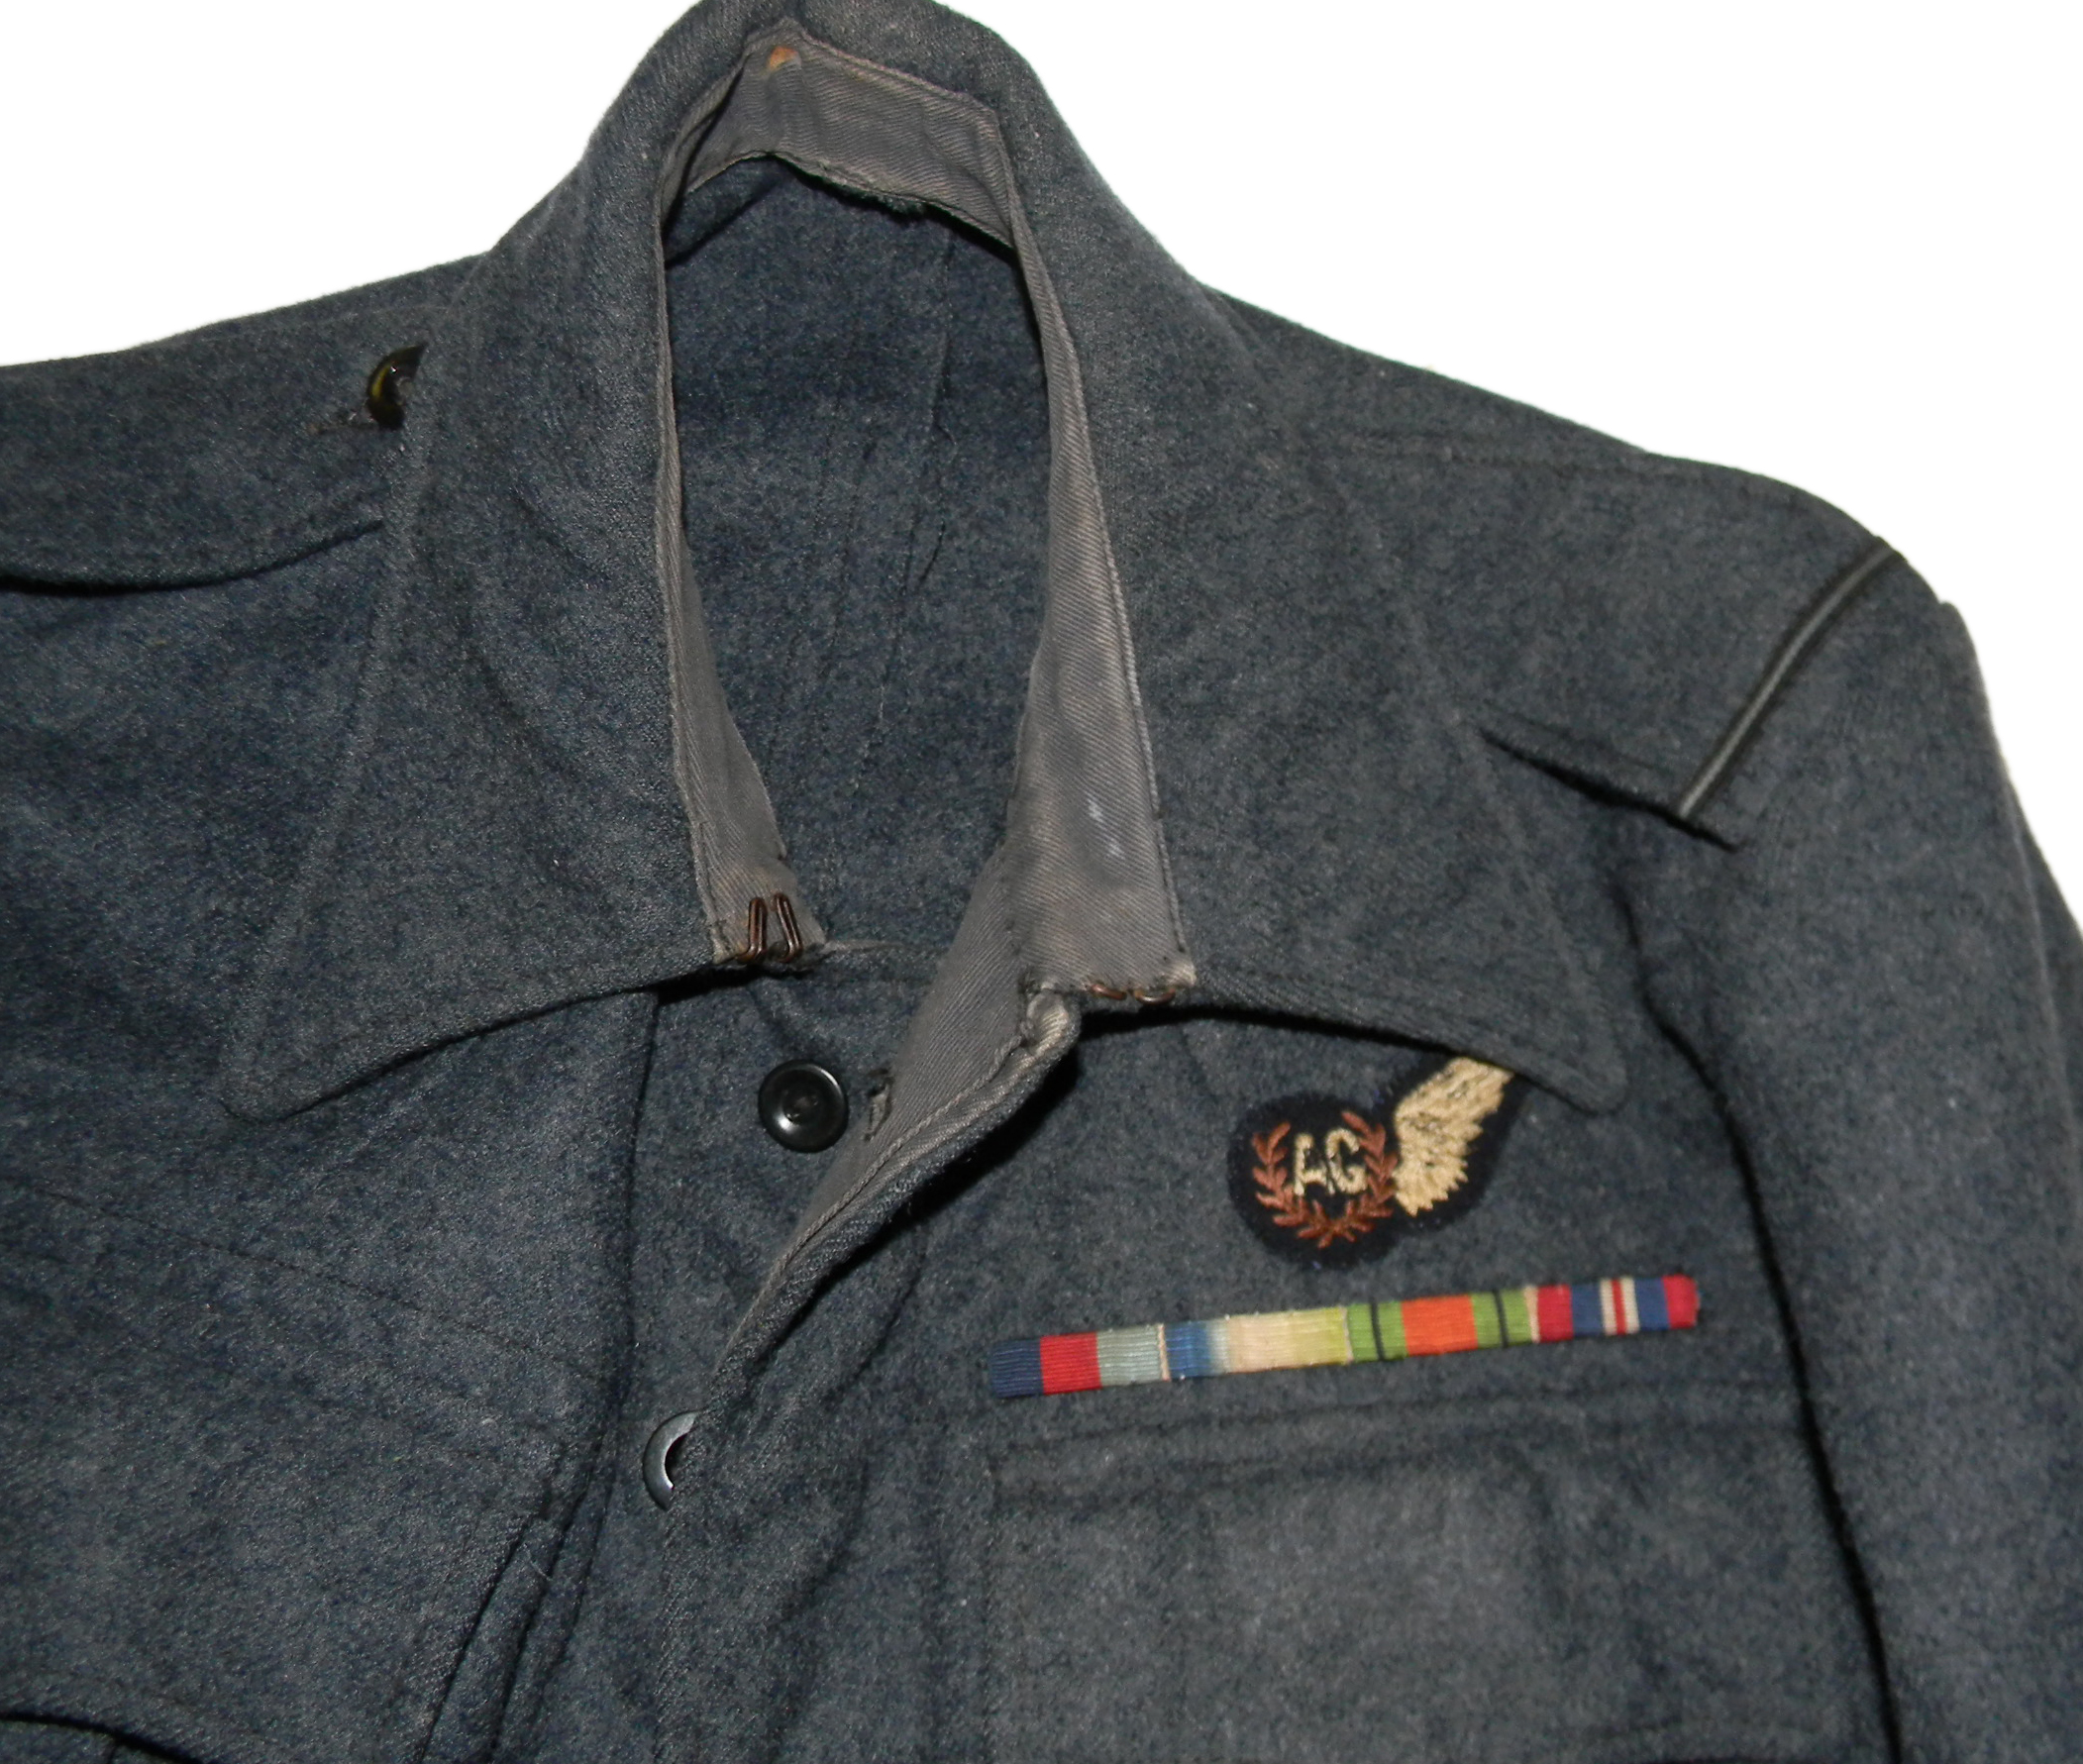 RAF officer's BD blouse Air Gunner